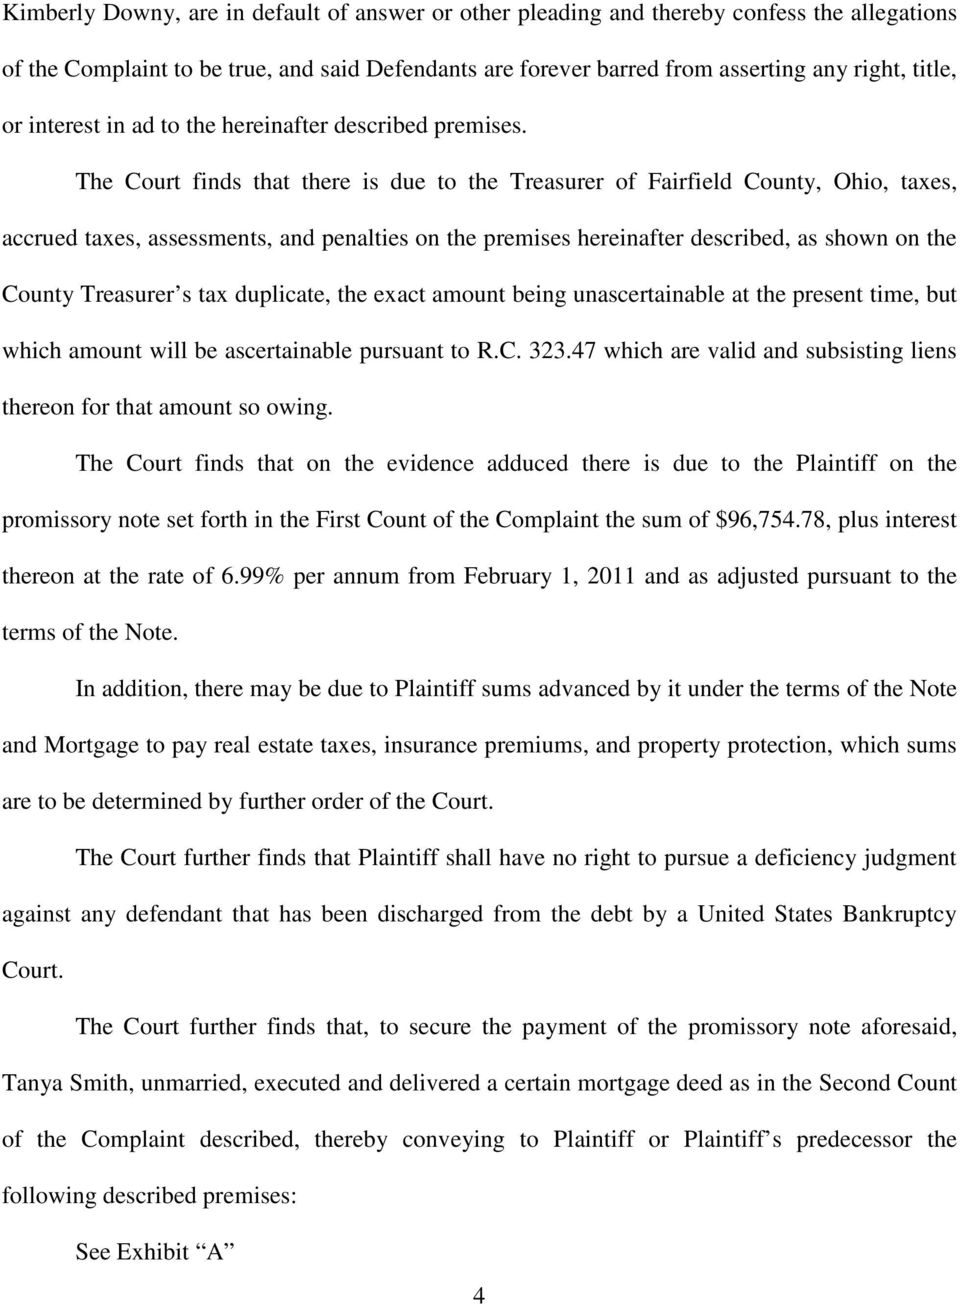 The Court finds that there is due to the Treasurer of Fairfield County, Ohio, taxes, accrued taxes, assessments, and penalties on the premises hereinafter described, as shown on the County Treasurer